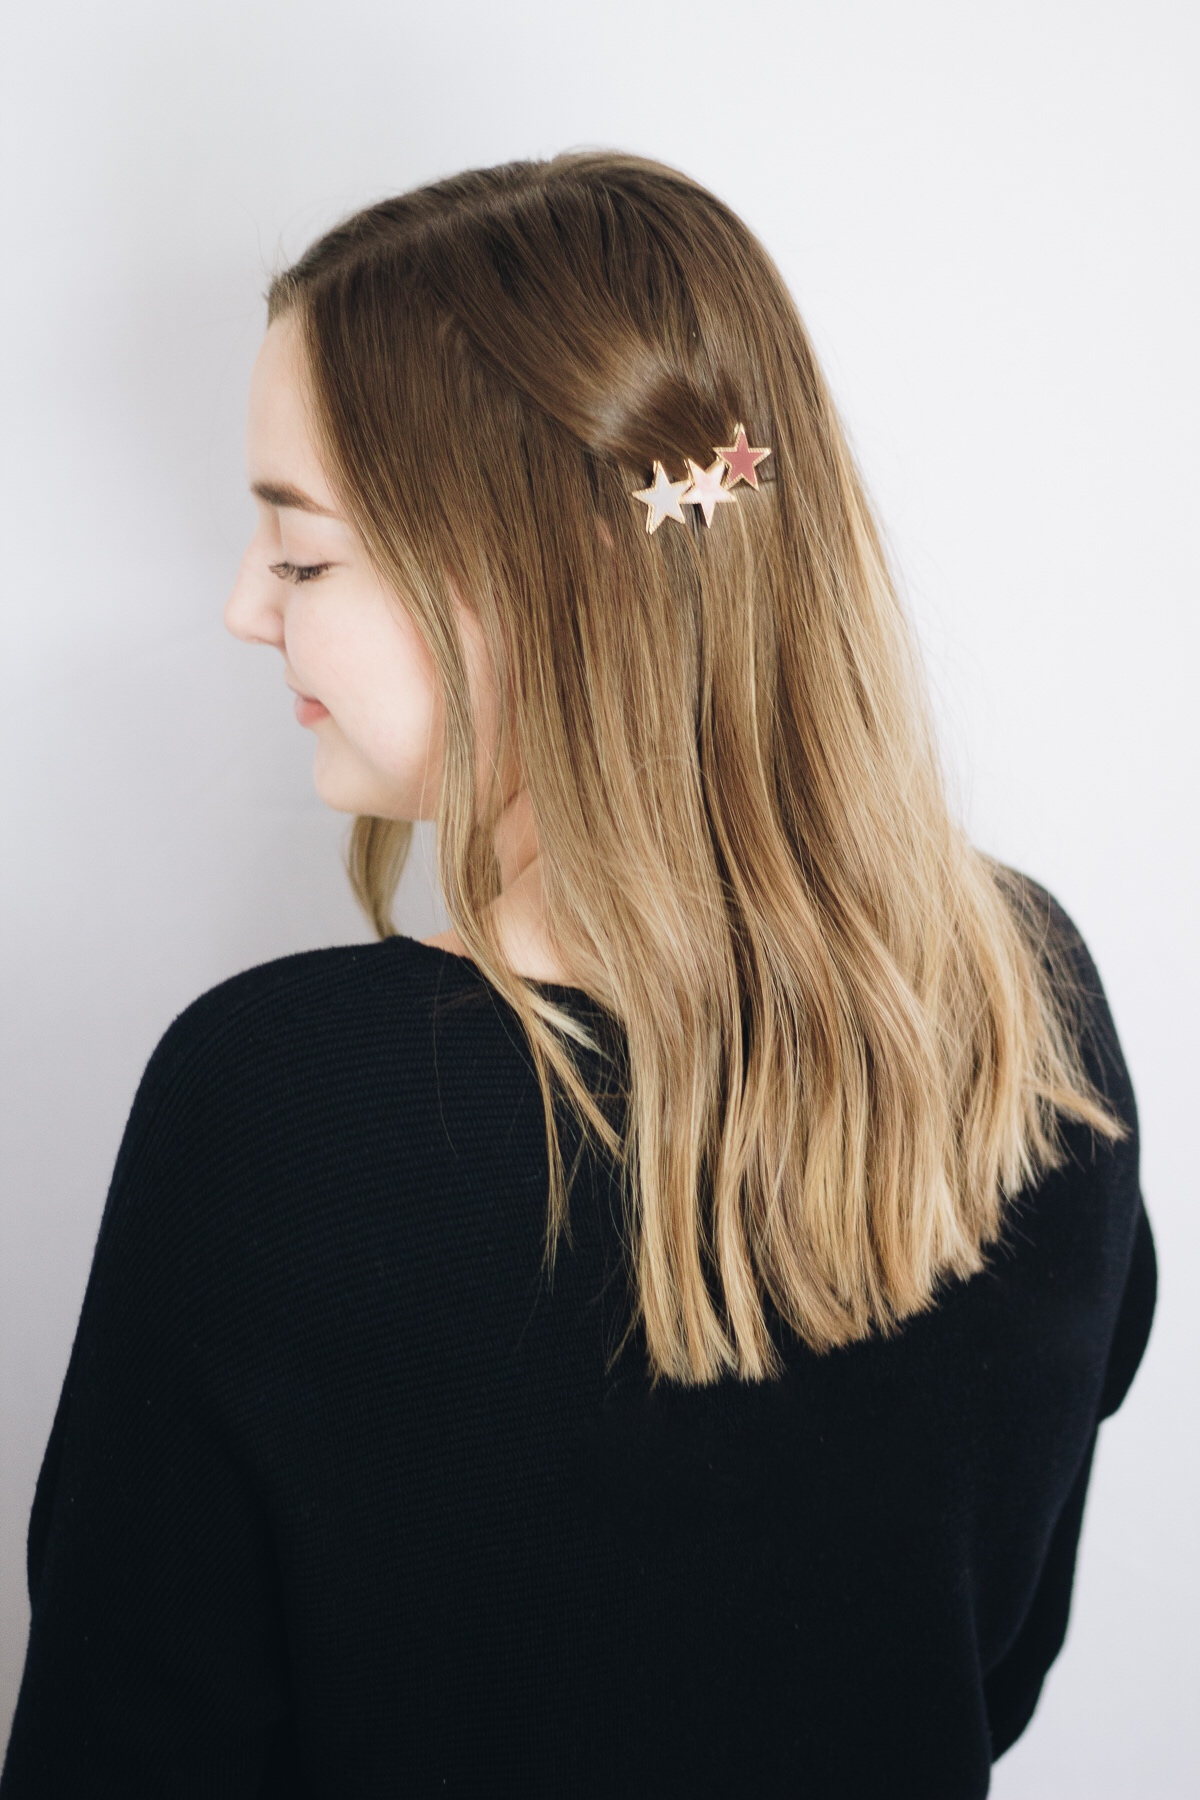 5-Minute Hairstyles for the Girl with No Time